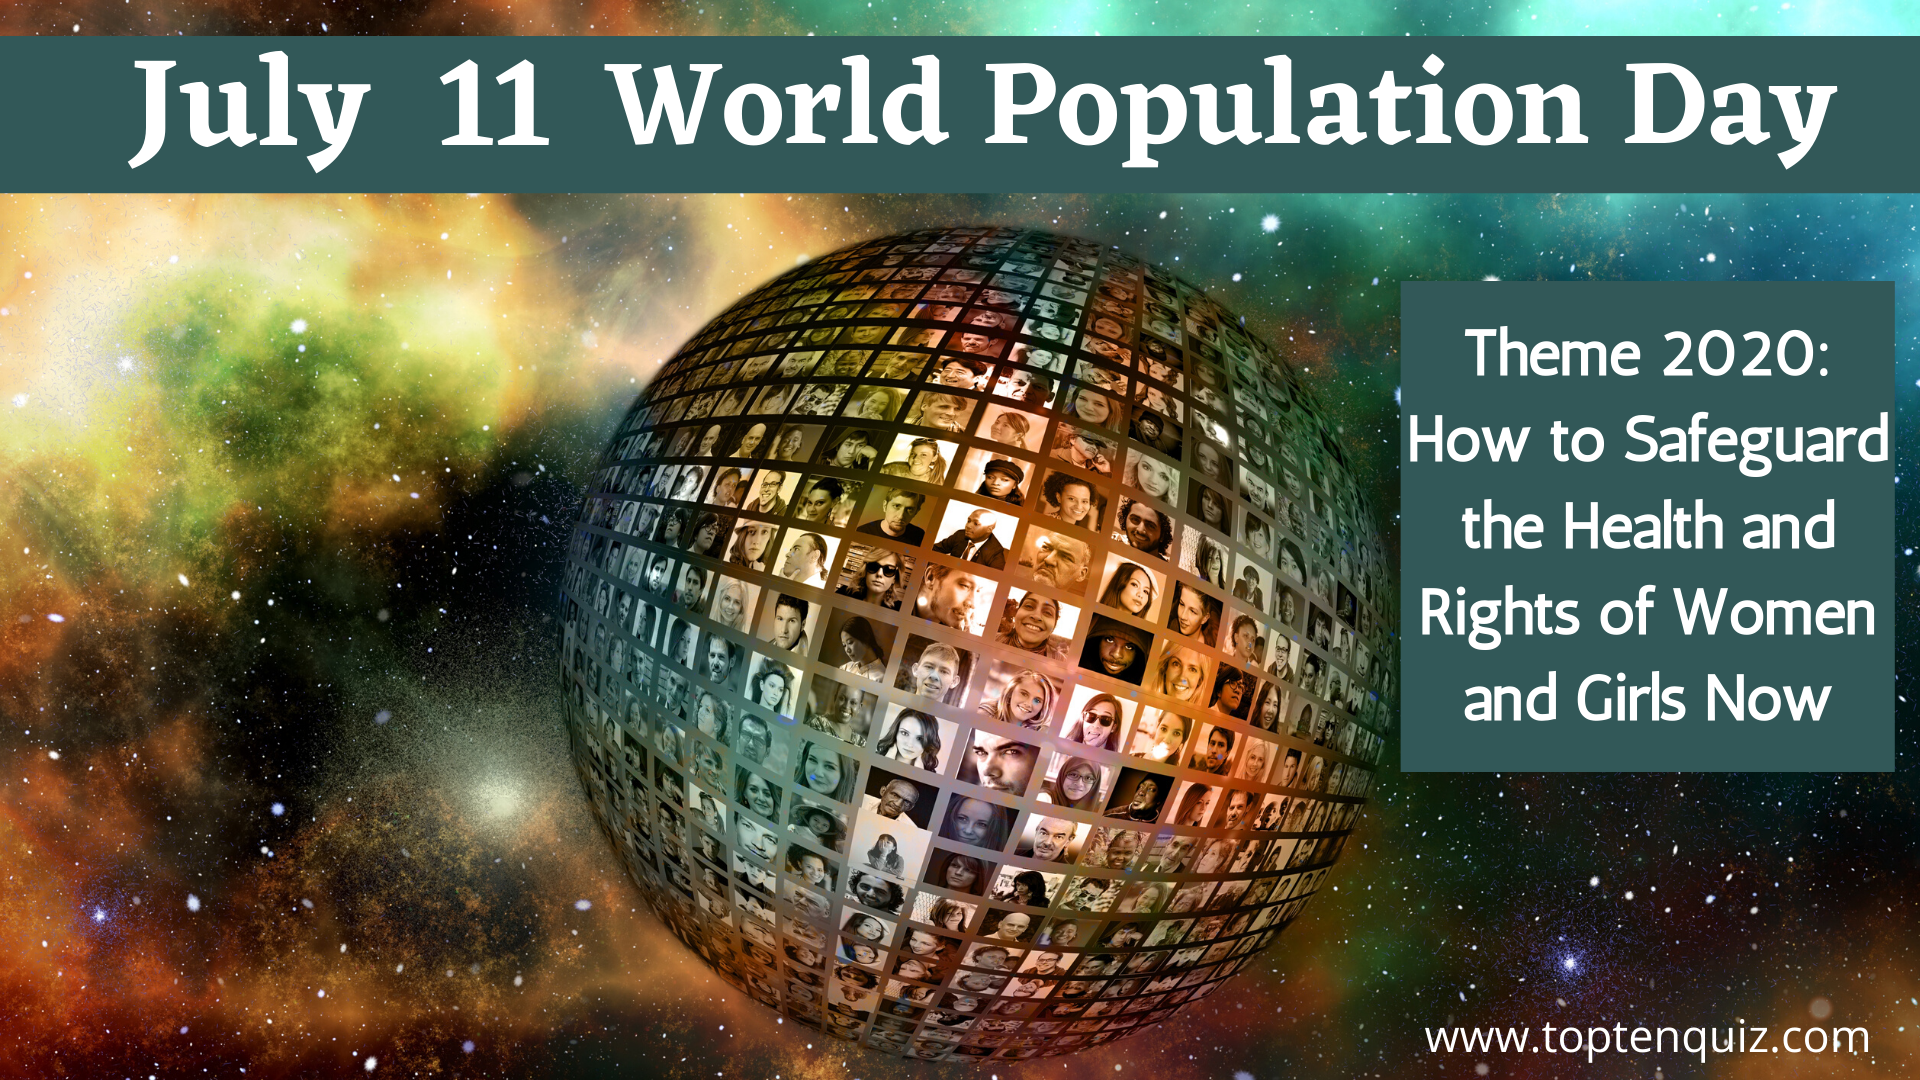 July 11 World Population Day Theme 2020 and 2019, 2018